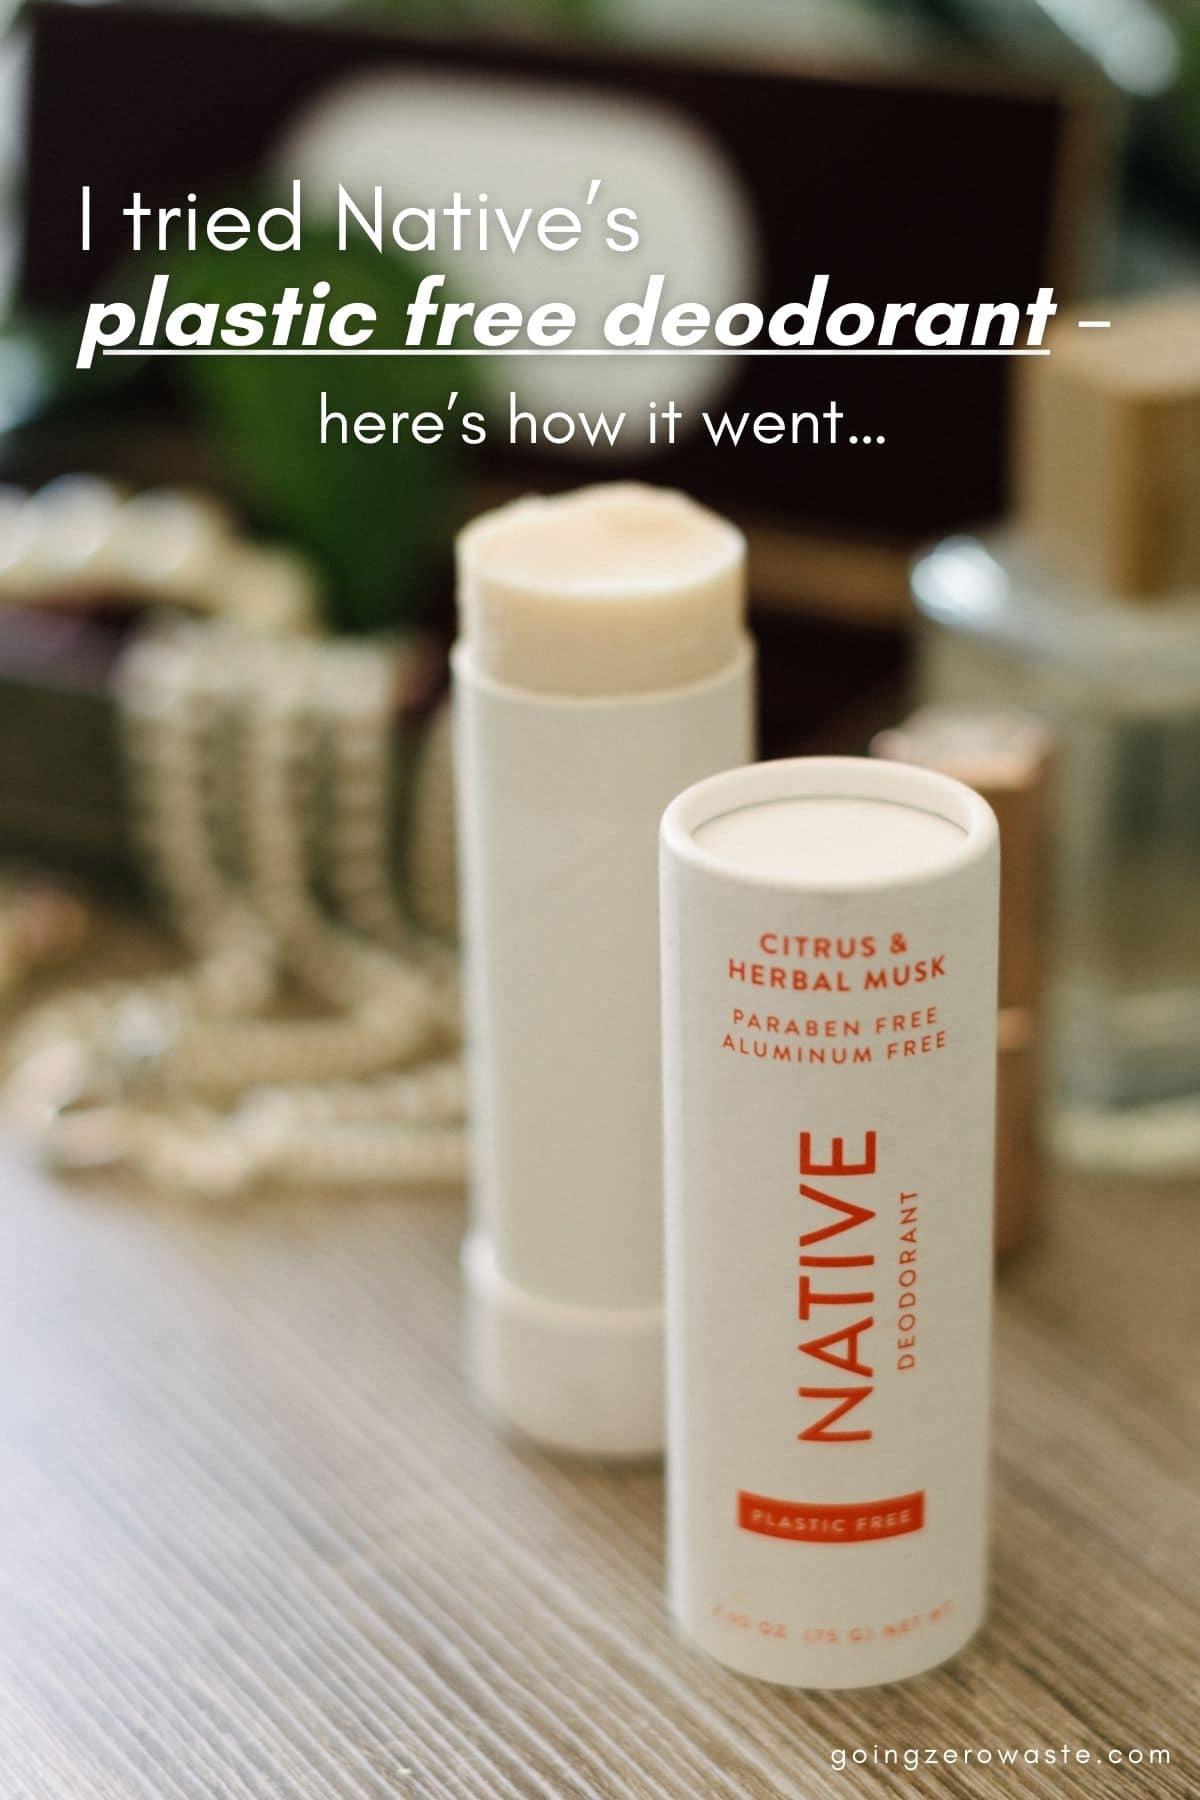 I tried Native's Plastic Free Deodorant - here's how it went from www.goingzerowaste.com #ecofriendly #deodorant #plasticfree #zerowaste #plasticfreebathroom #sustainability #compostable